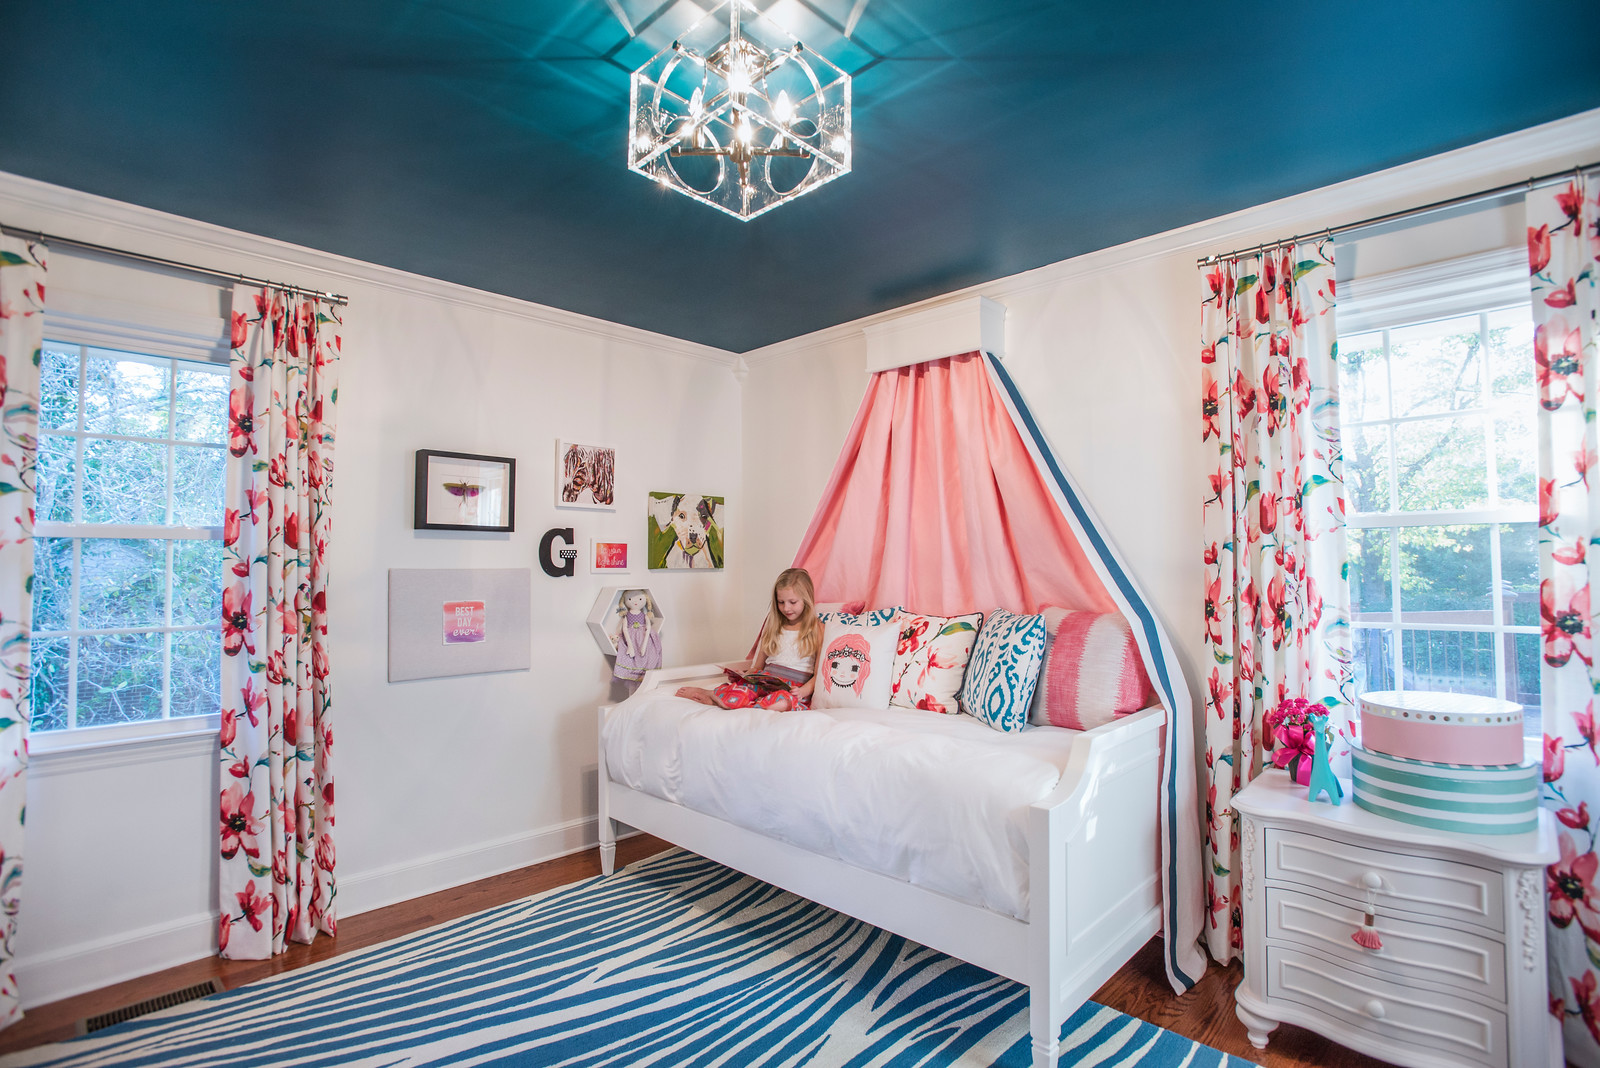 Fall '17: My middle daughter Genevieve's bedroom